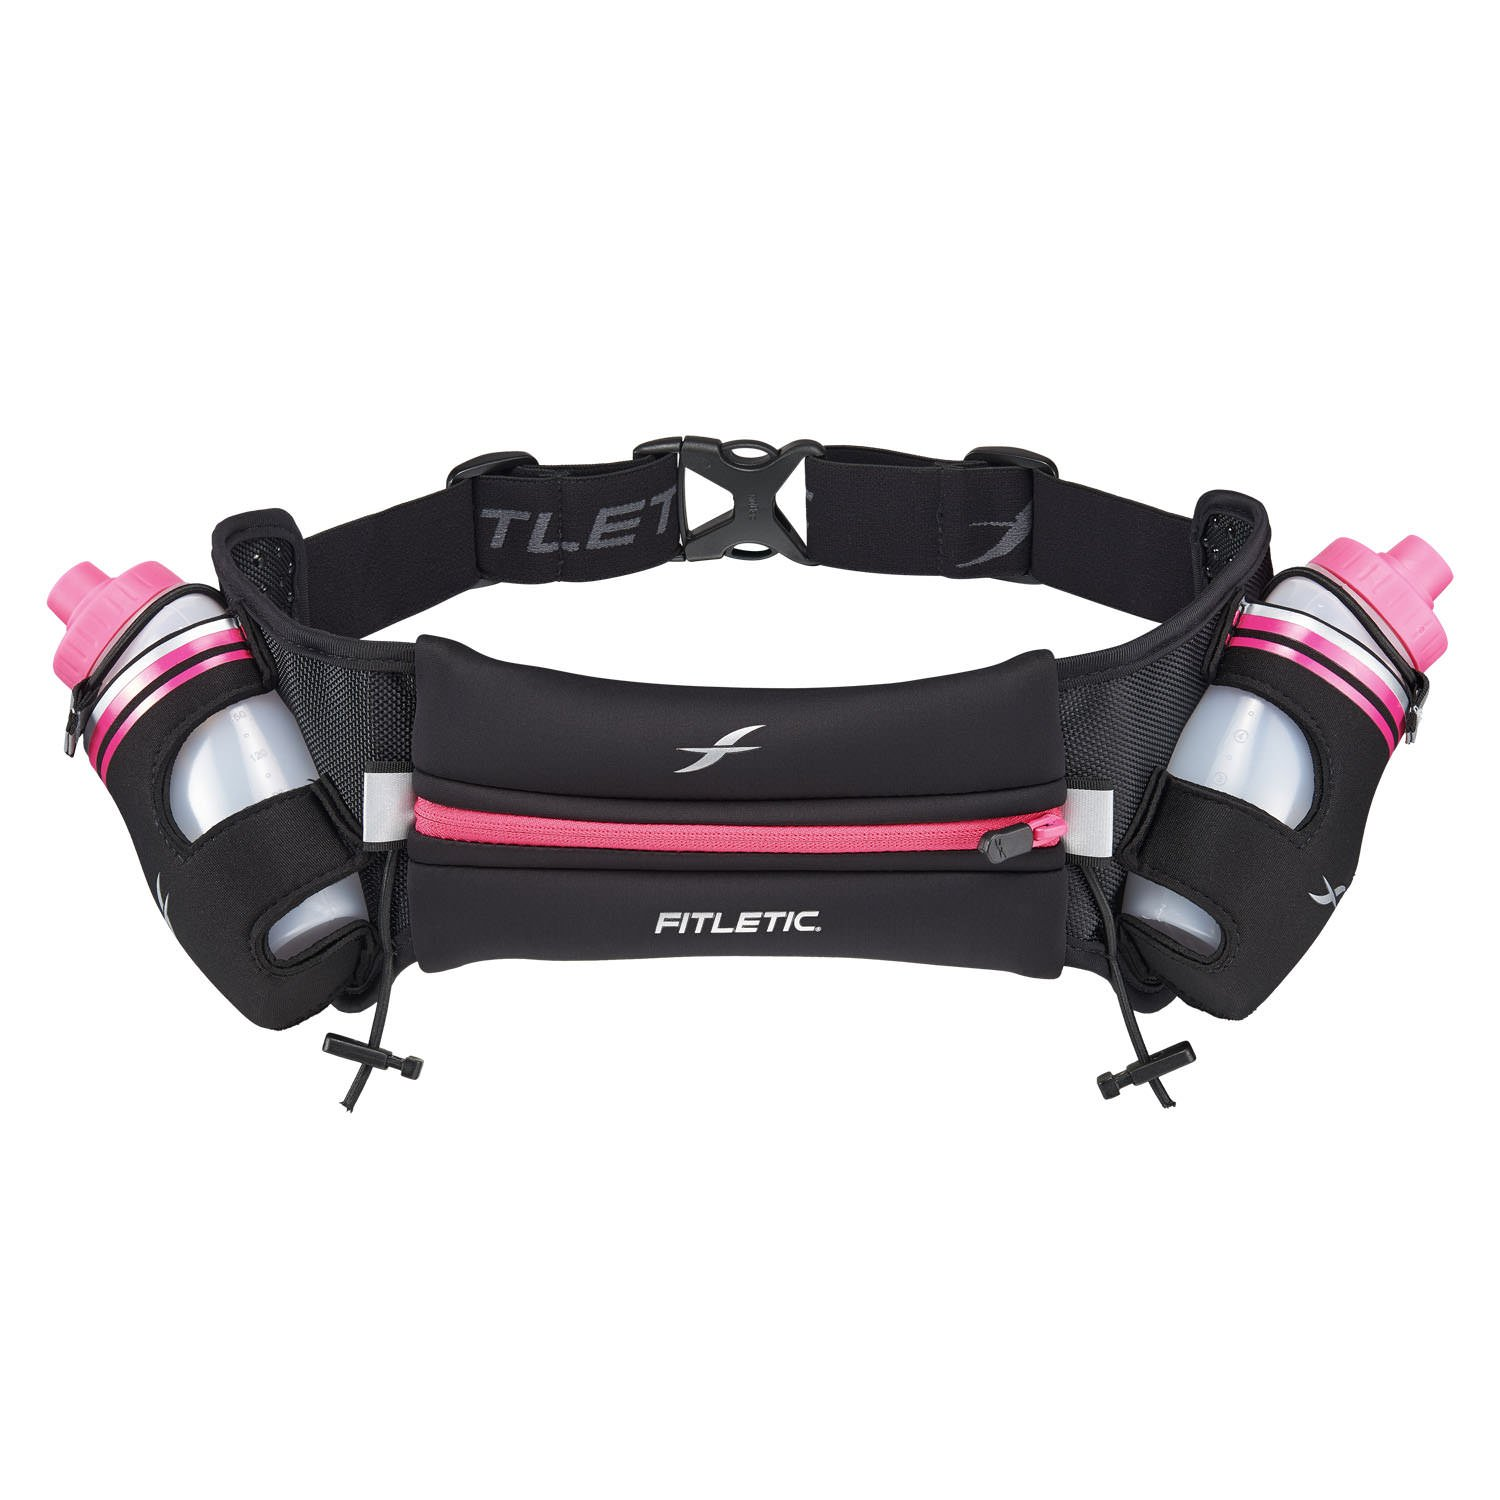 Fitletic iFitness 16 oz. Hydration Belt S M, Pink